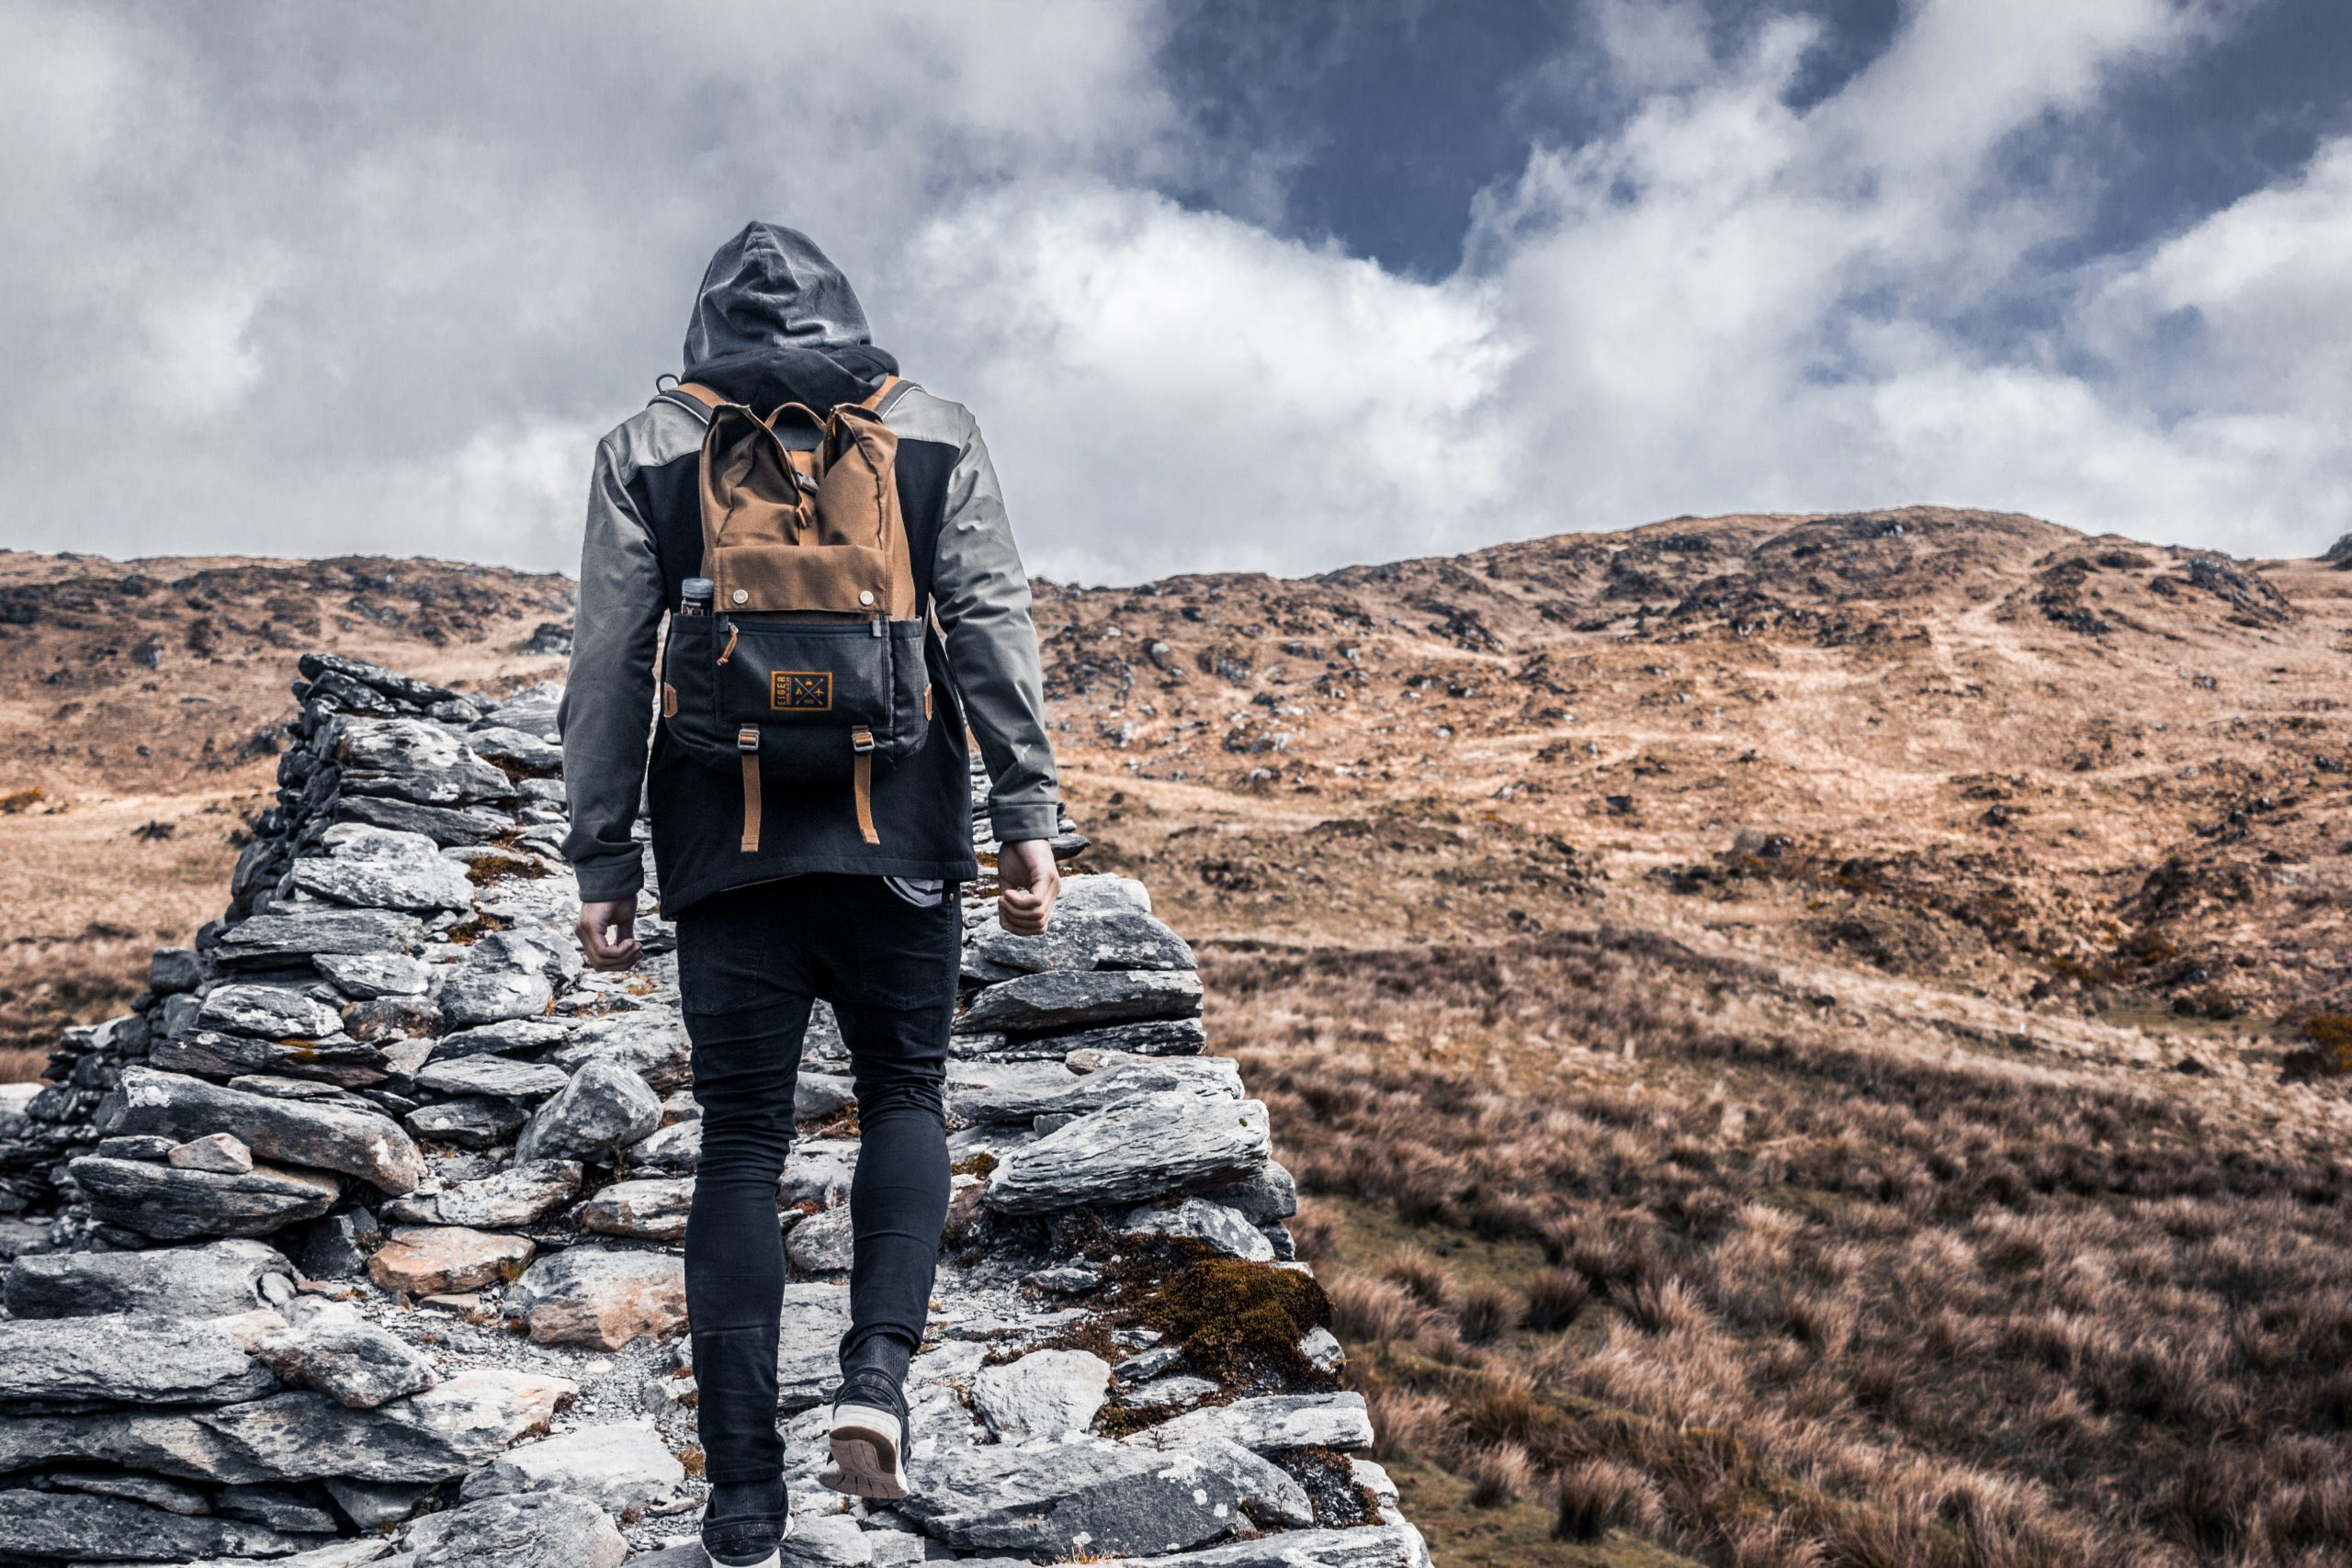 How to Choose Your Backpack for Hiking or Trekking